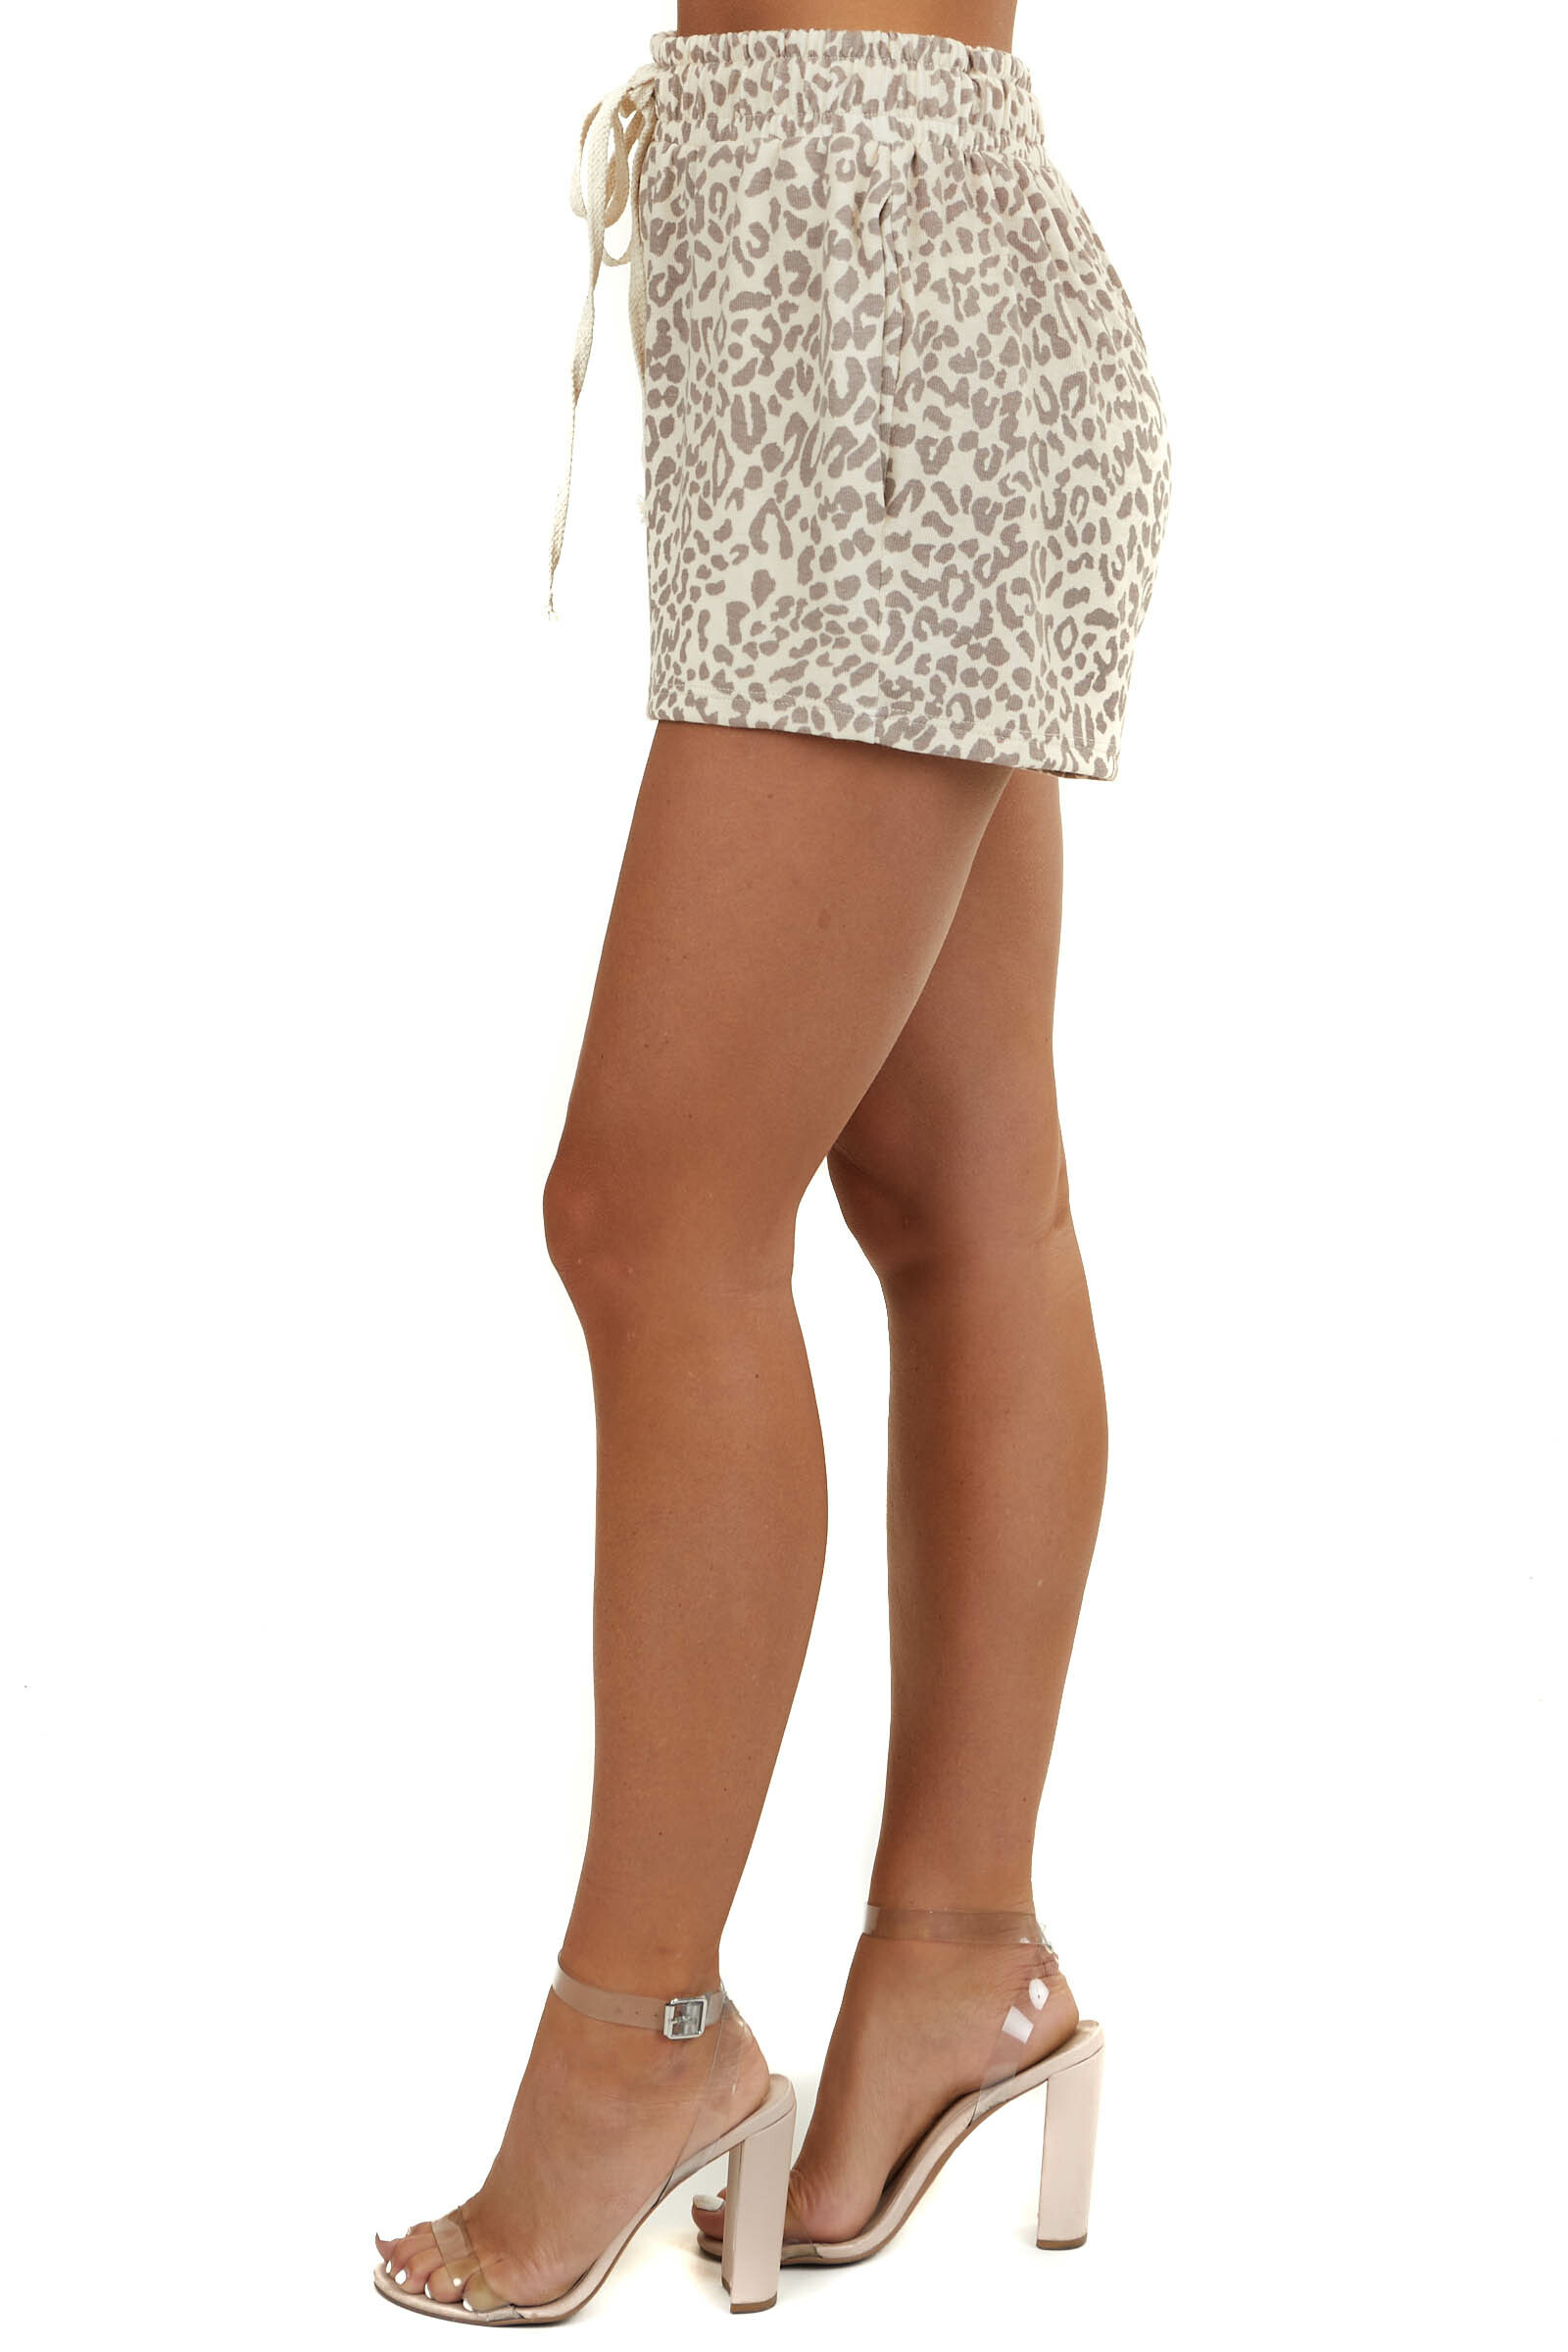 Beige Leopard Print Soft Knit Shorts with Side Pockets